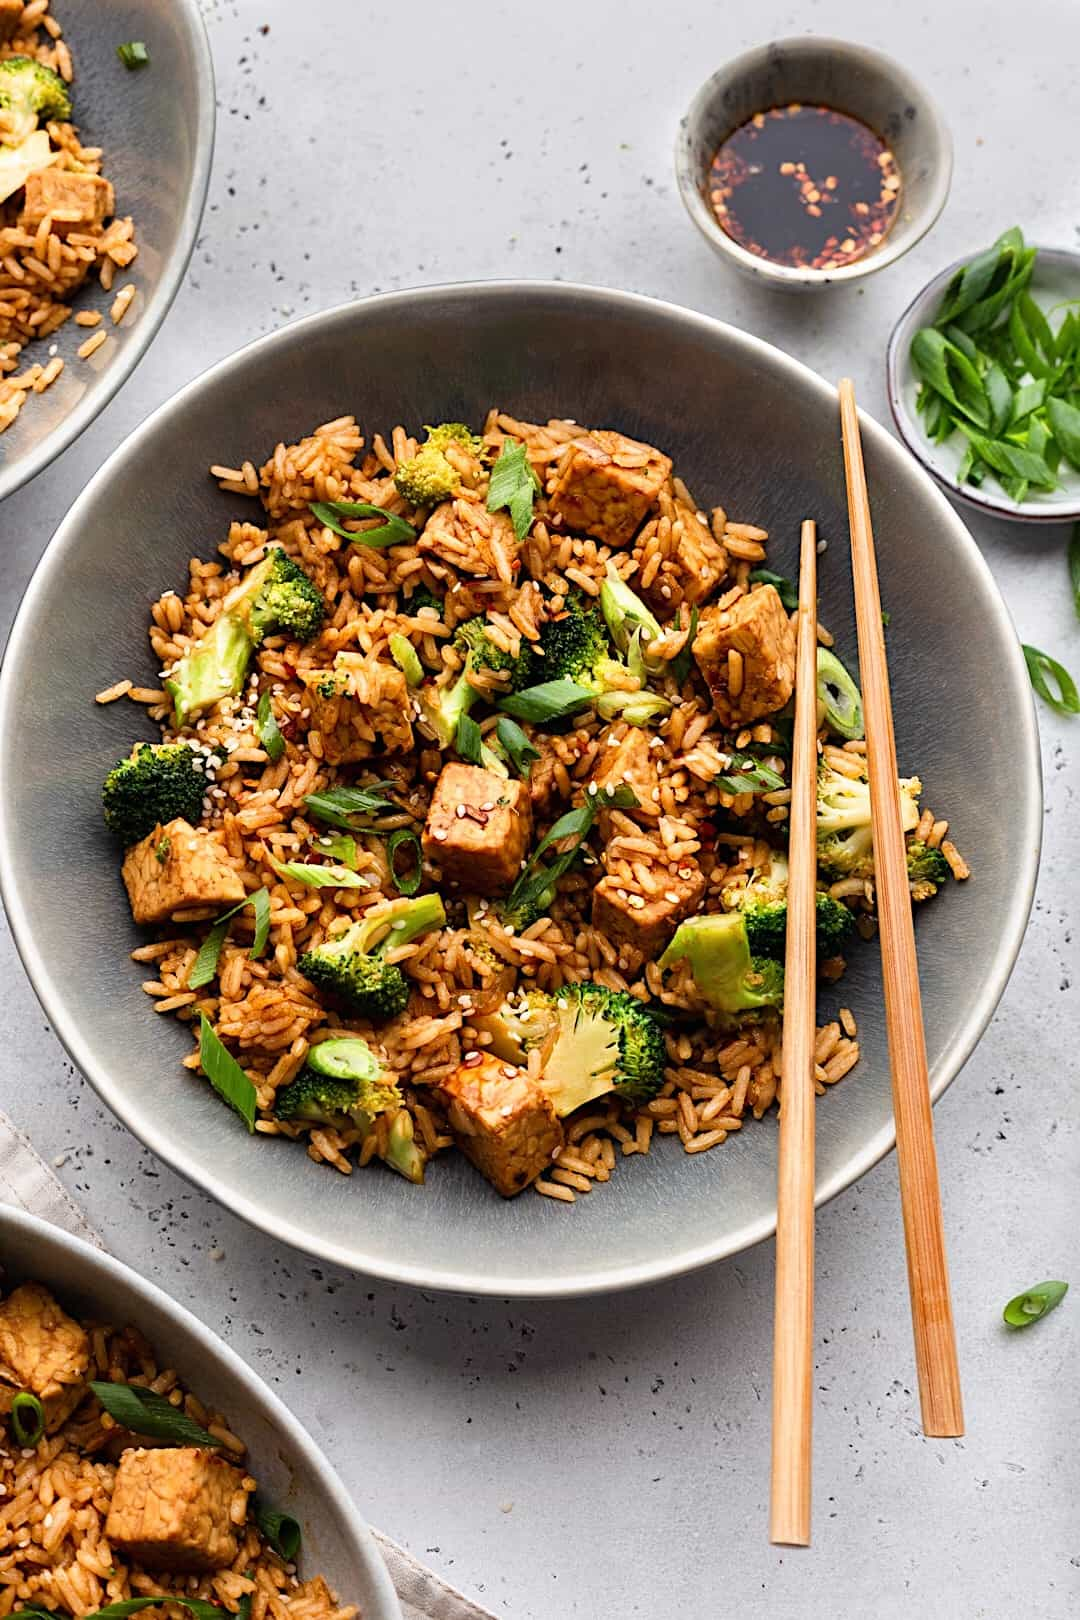 Vegan Tempeh Fried Rice #vegan #recipe #tempeh #broccoli #rice